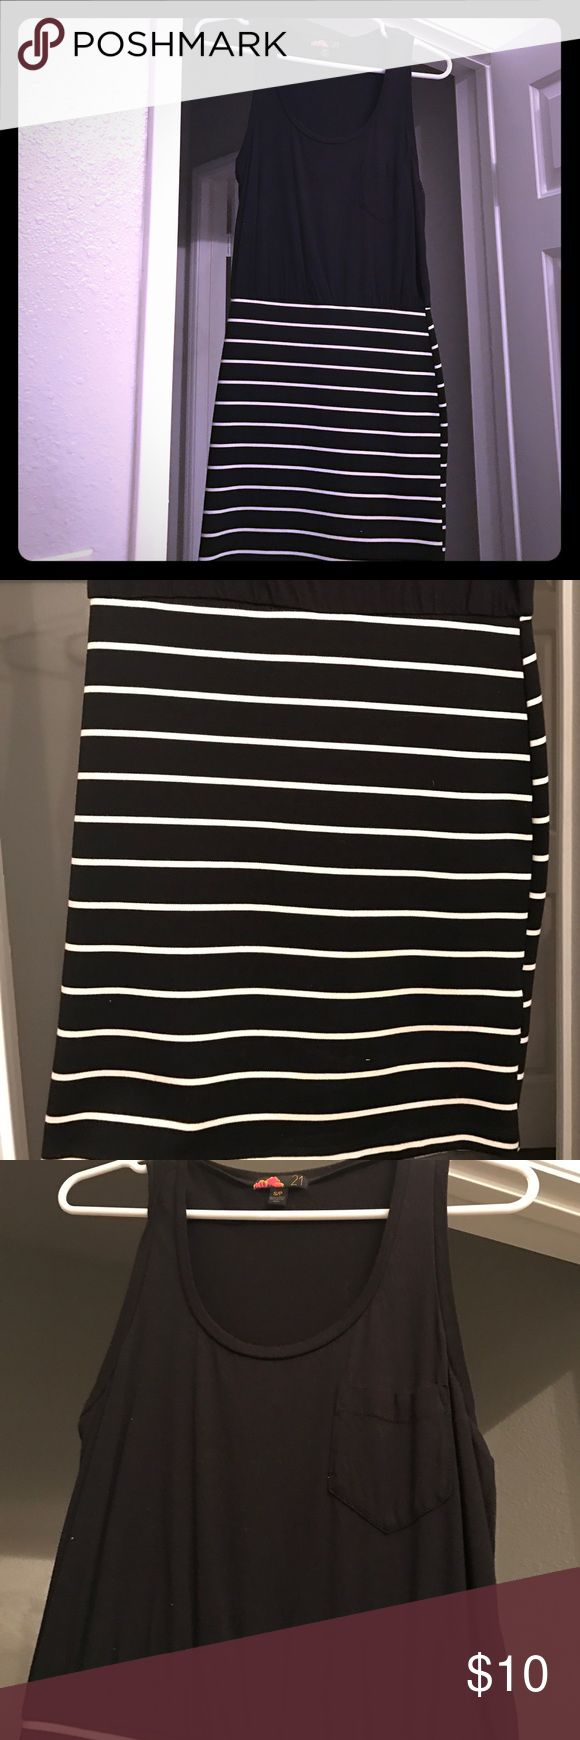 Black & White Striped Dress Black and white striped dress from forever21. Size small. Great condition. Forever 21 Dresses